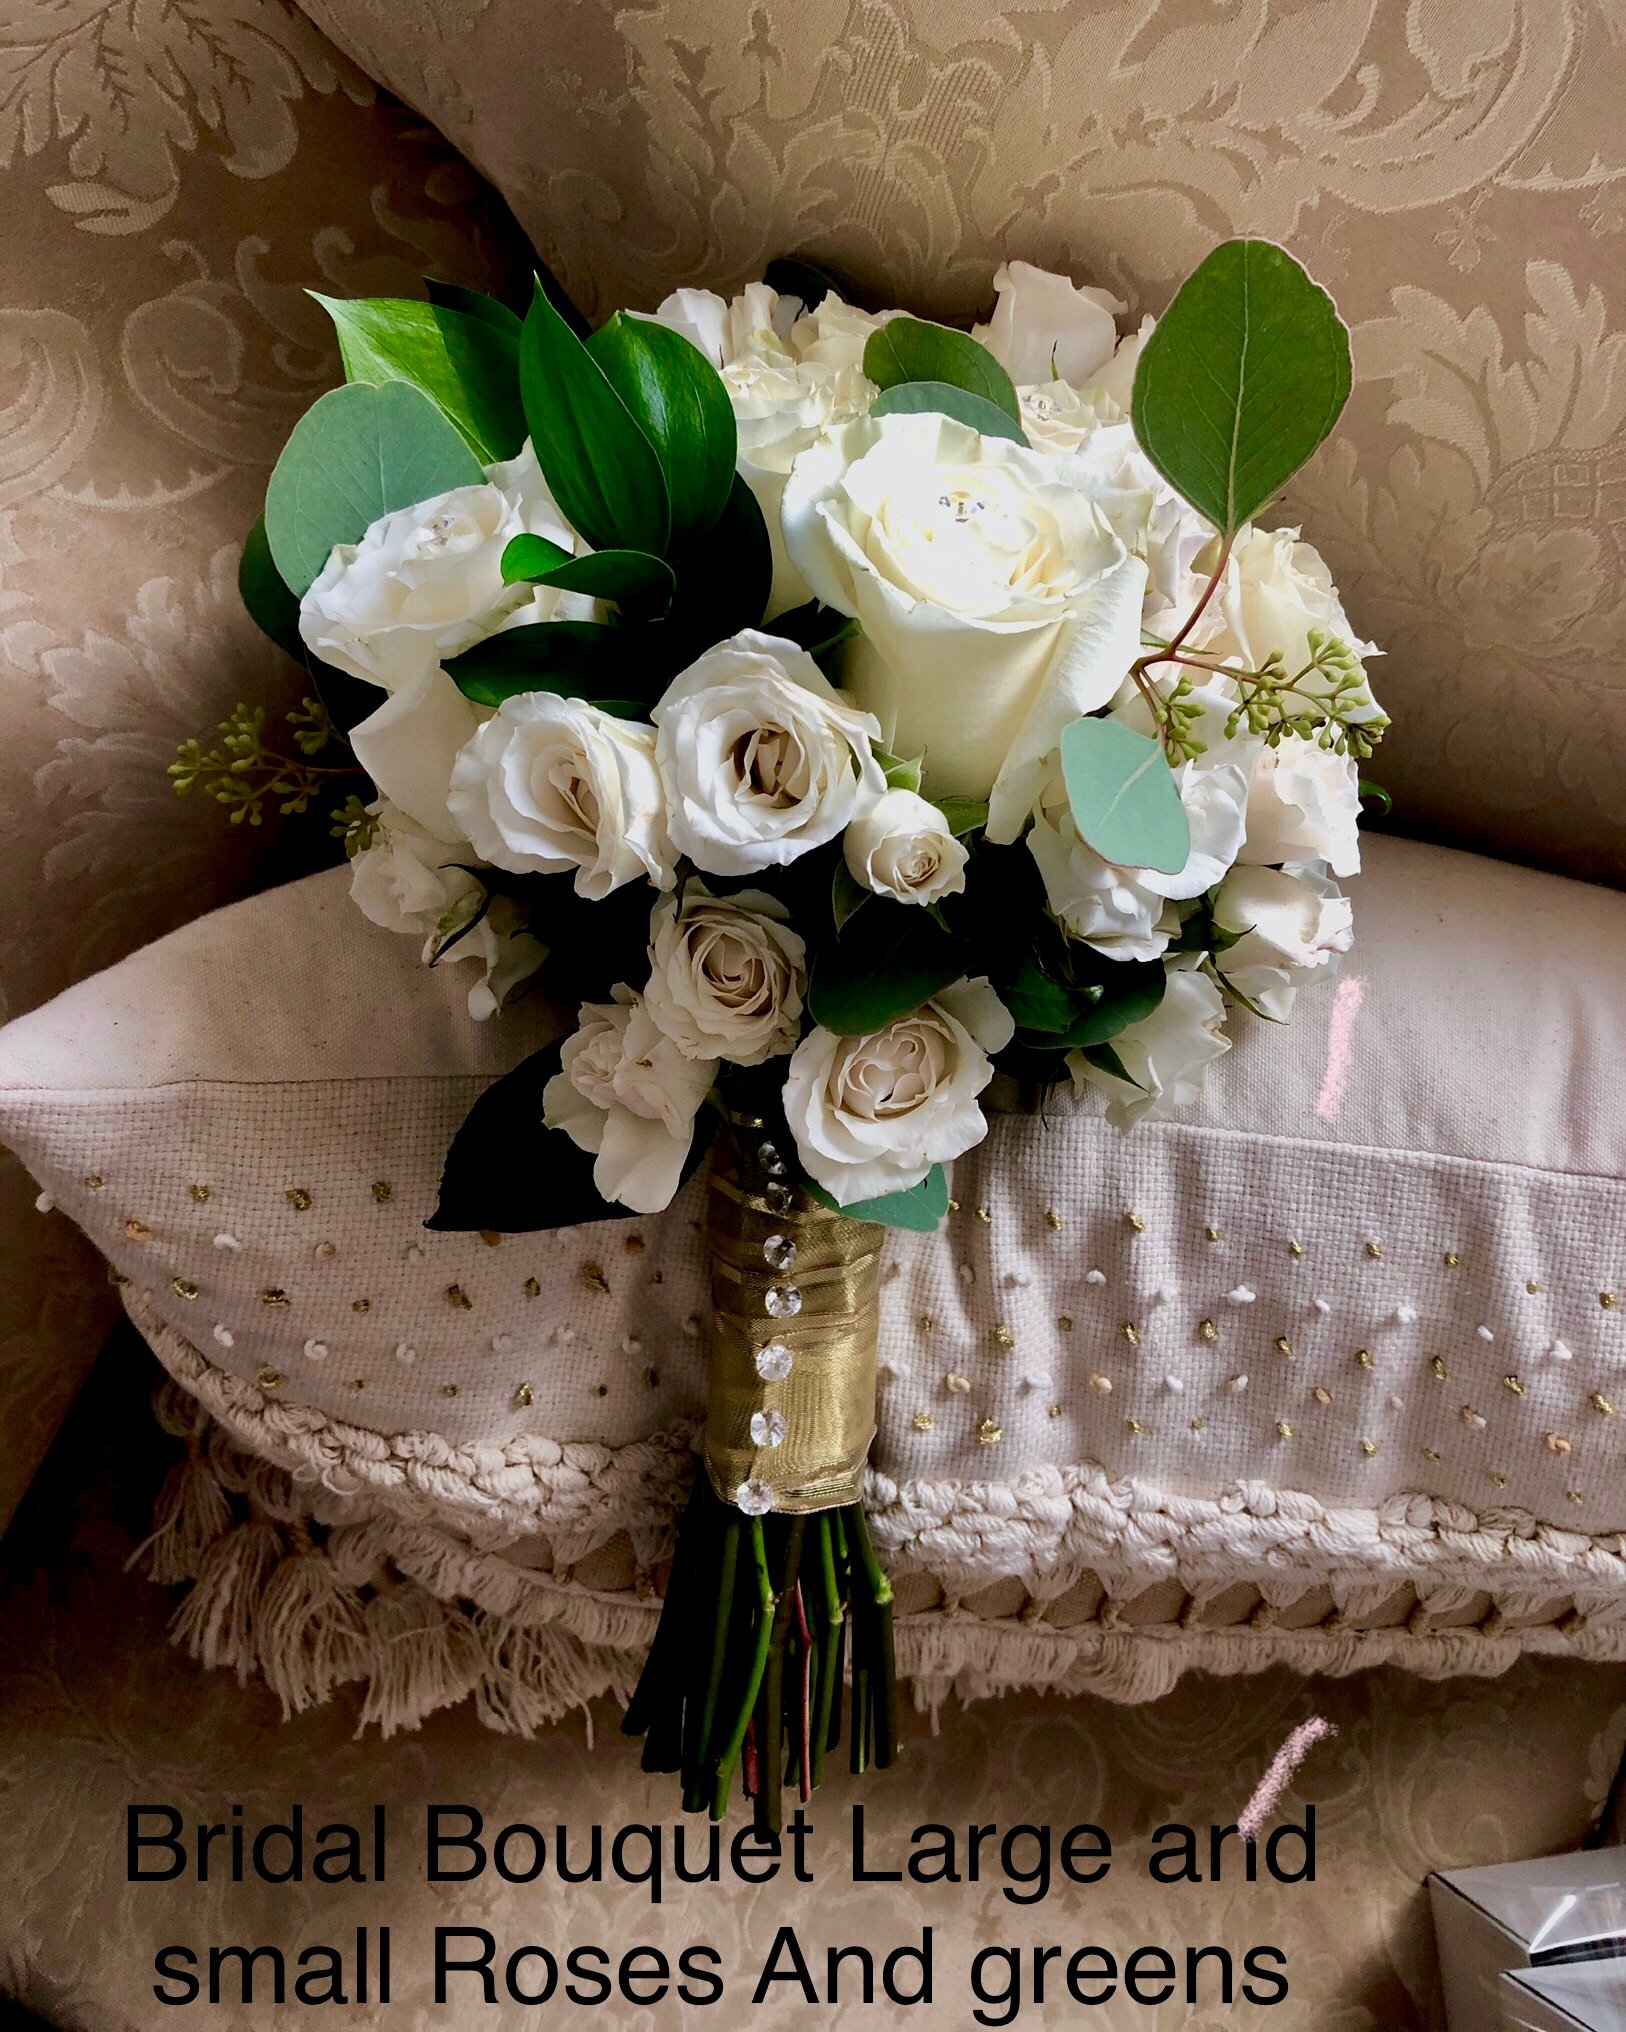 Bridal Bouquet Large and Small Roses and Greens